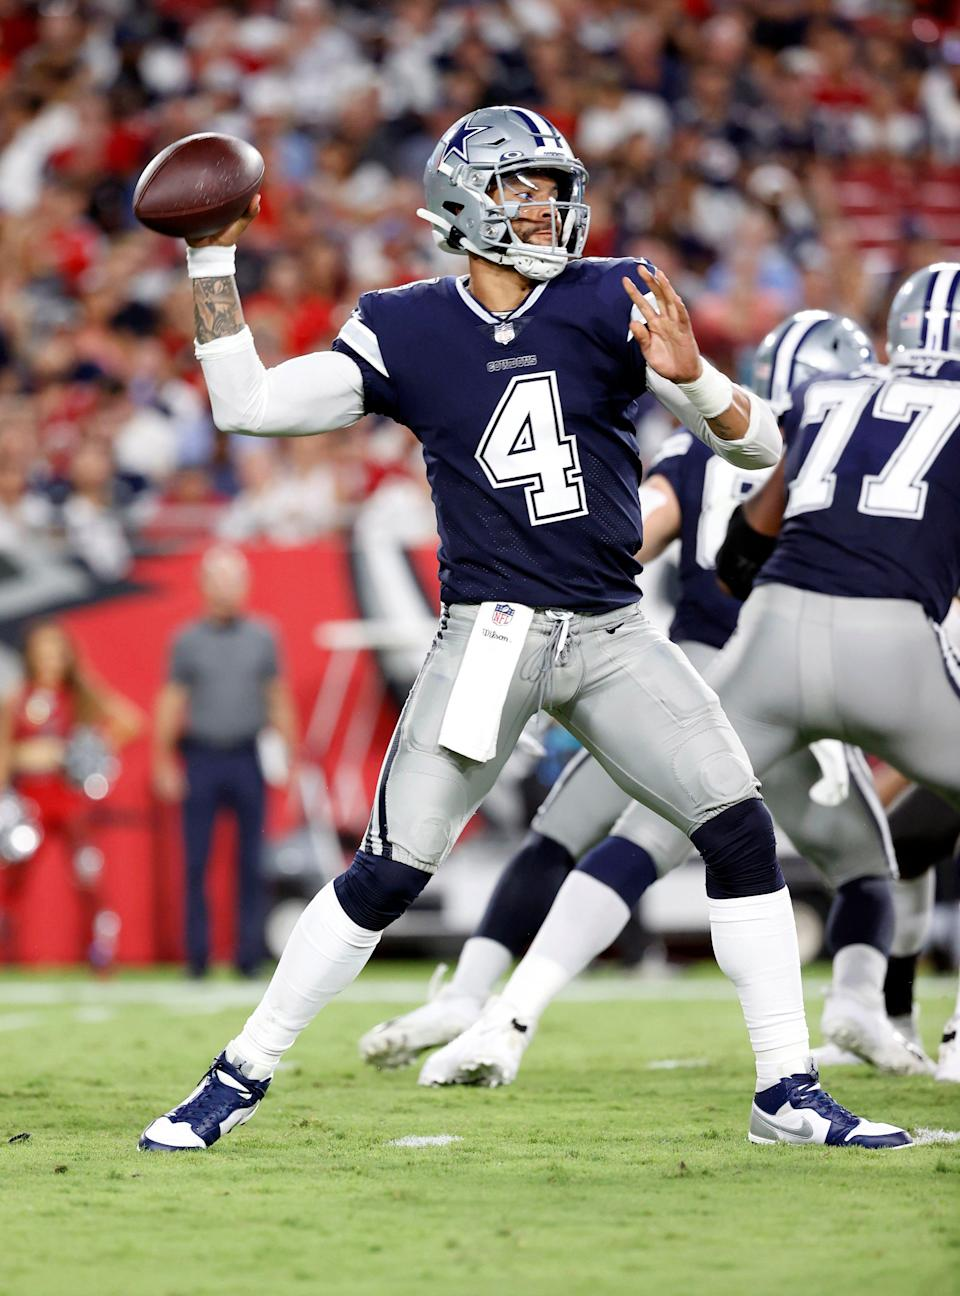 Dak Prescott's new contract with the Dallas Cowboys paid him a jaw-dropping $66 million signing bonus.